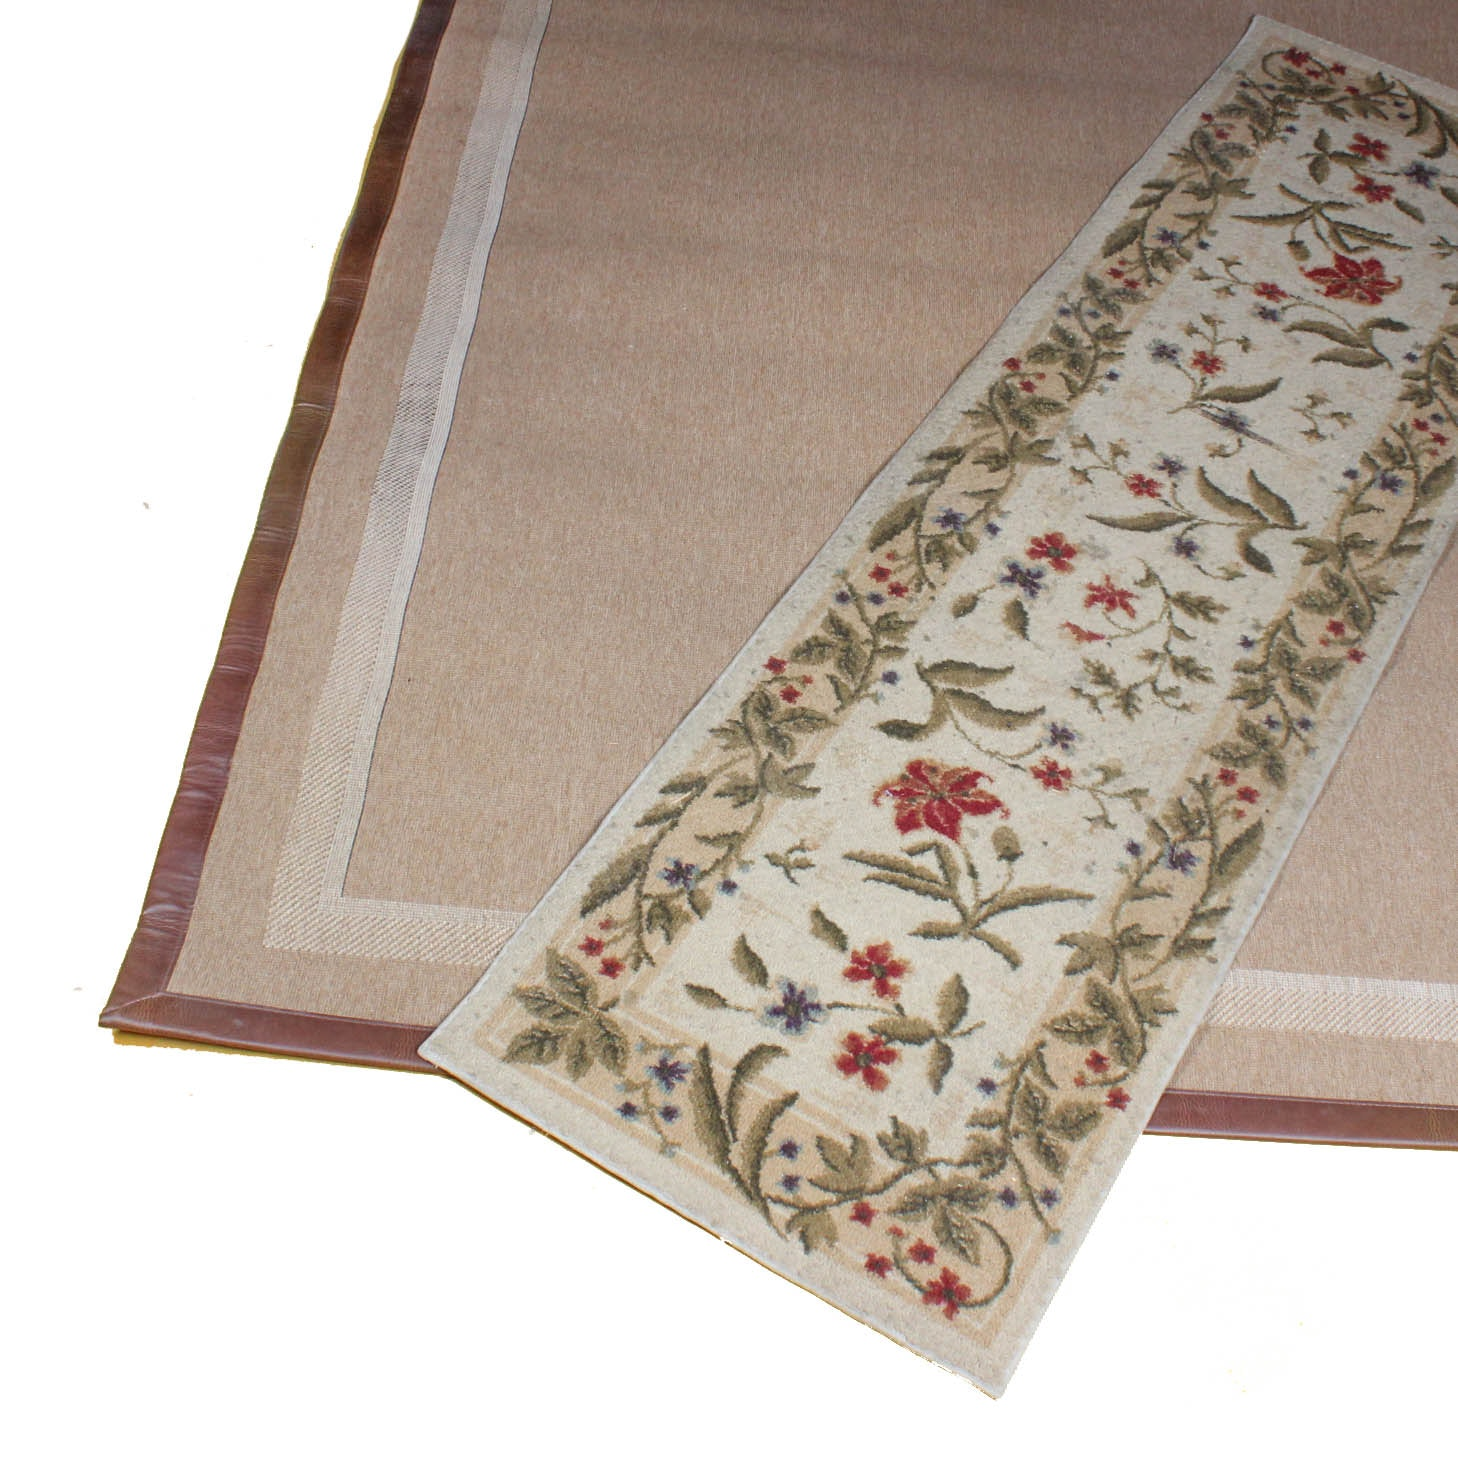 Handwoven Area Rug and Power Loomed Runner